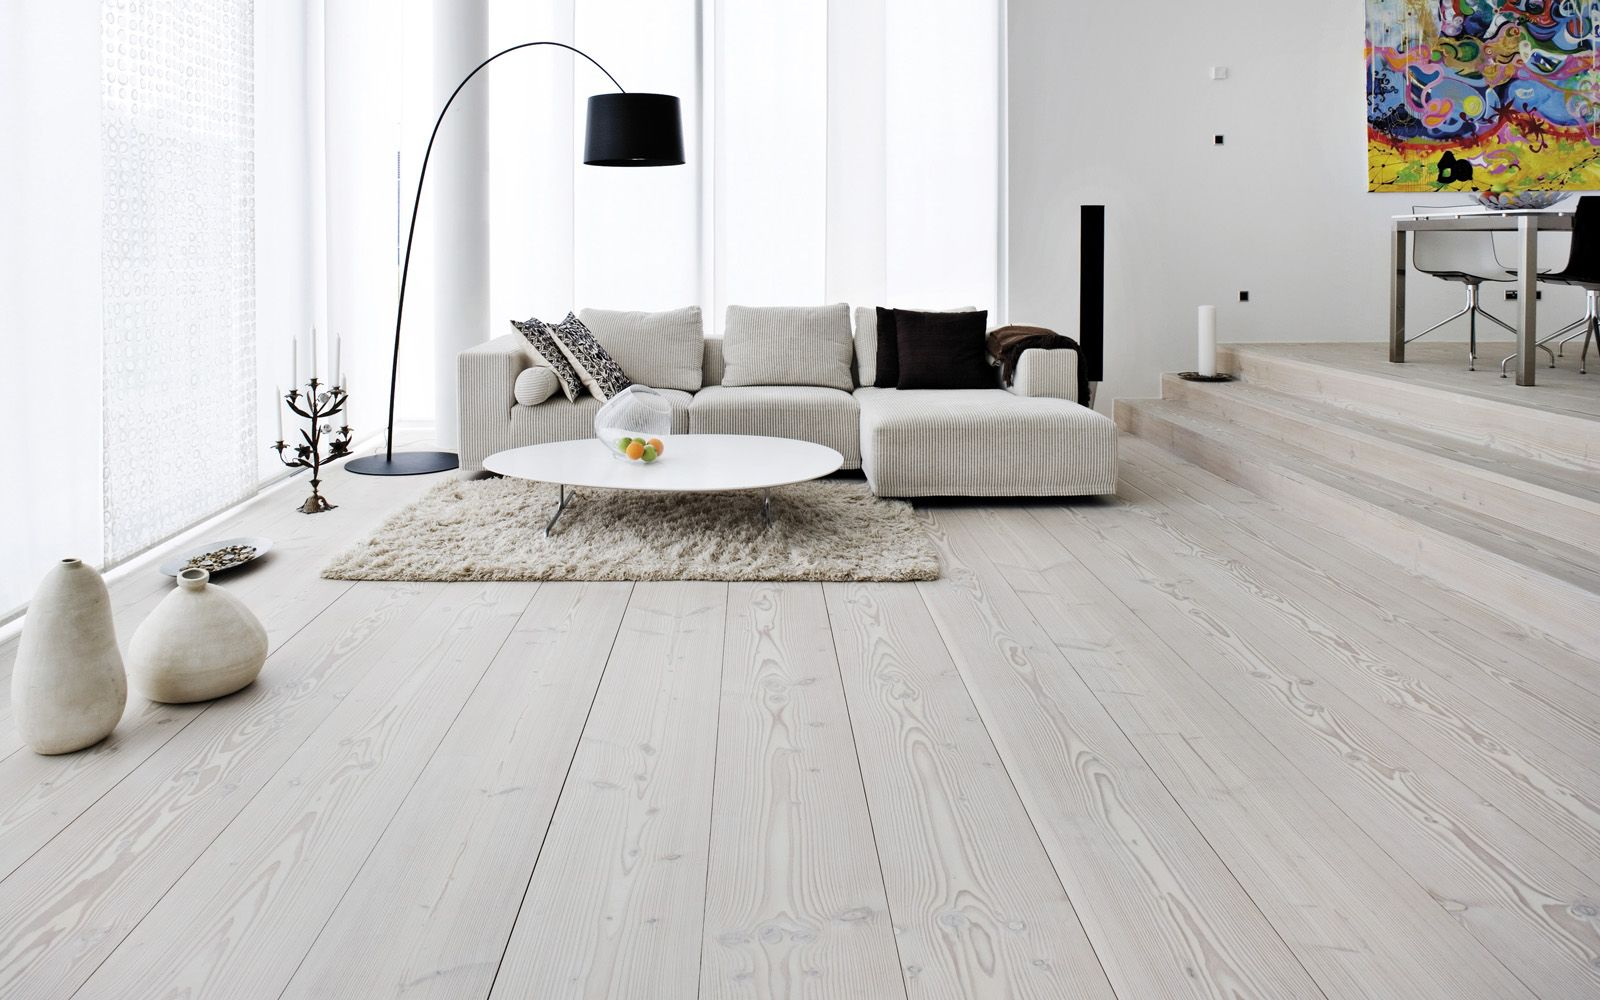 1000  images about FLOOR on Pinterest   Eclectic dining rooms  Allen roth and Painted wood floors. 1000  images about FLOOR on Pinterest   Eclectic dining rooms